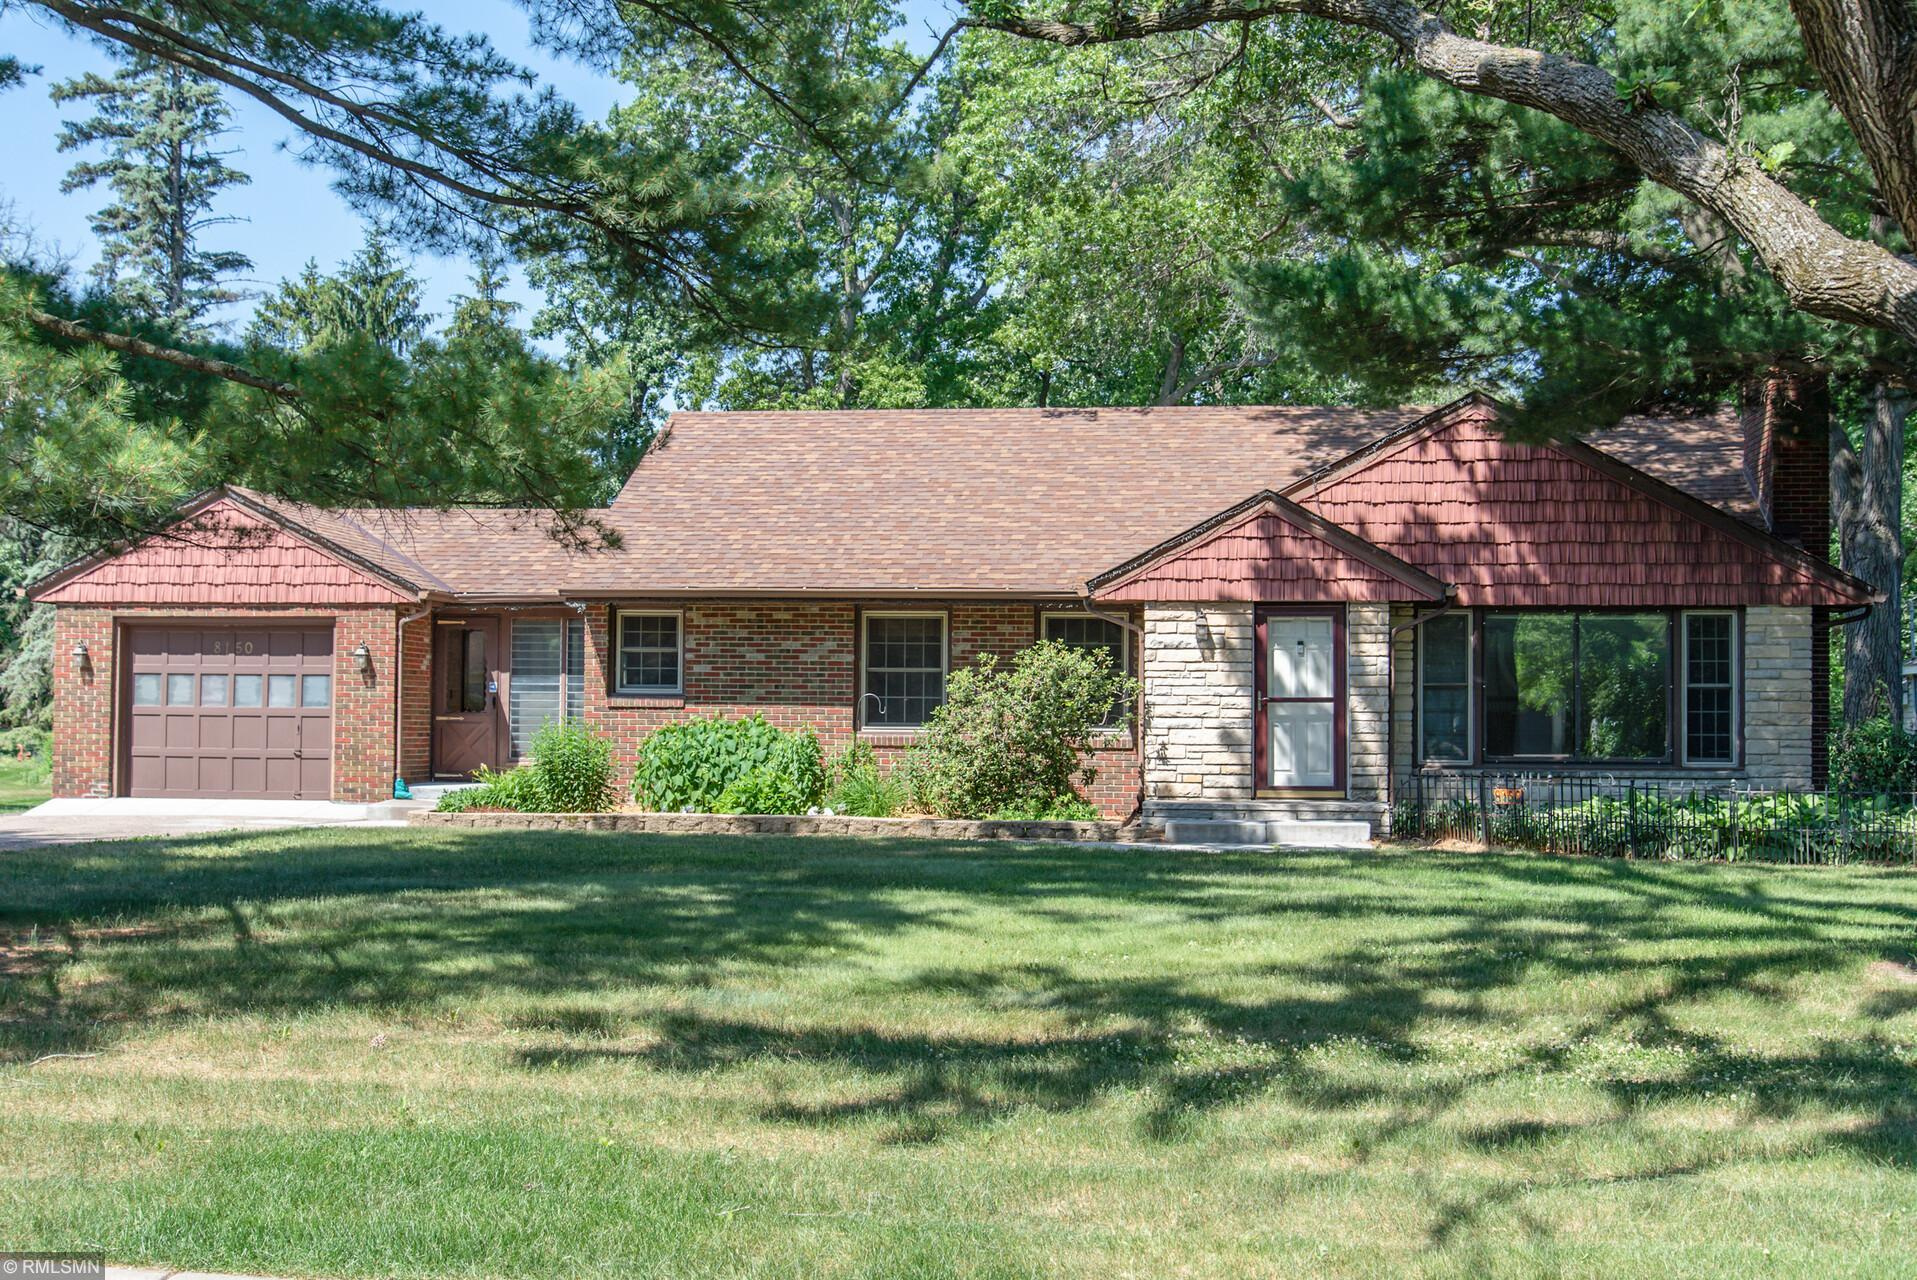 8150 Eastwood Property Photo - Mounds View, MN real estate listing